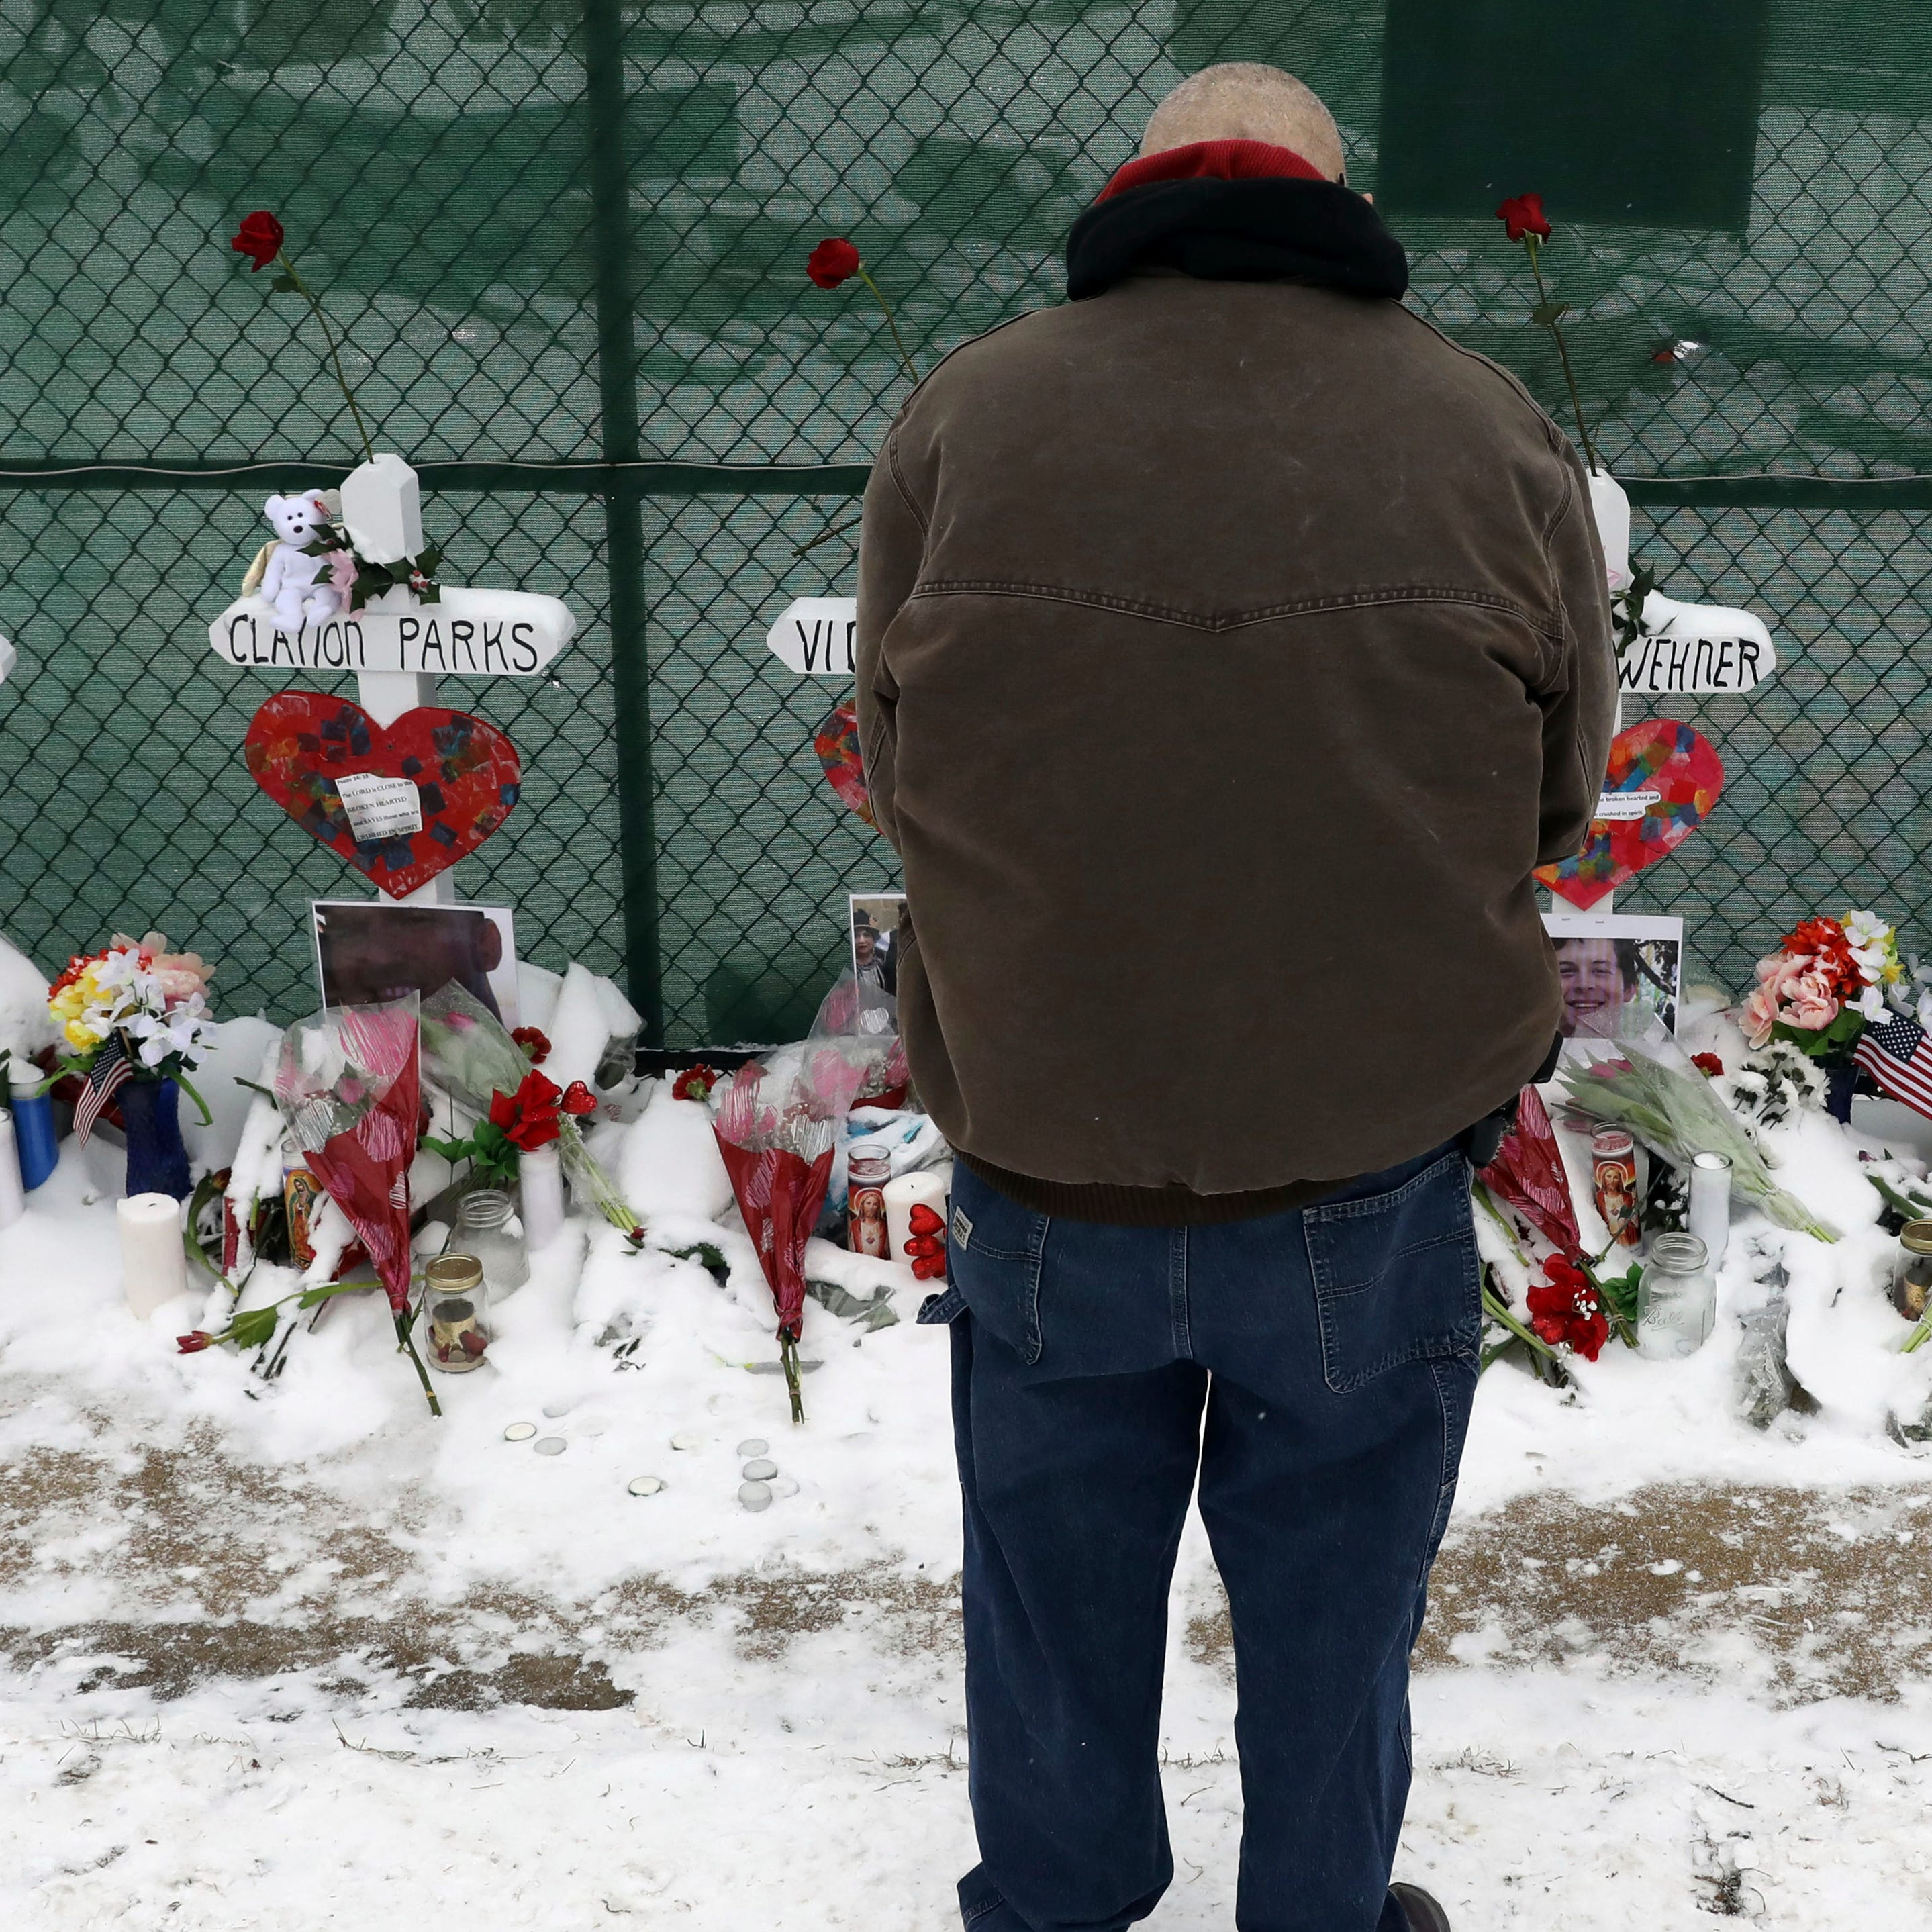 Aurora gunman's license was revoked, but he kept his gun. That's the norm in Illinois